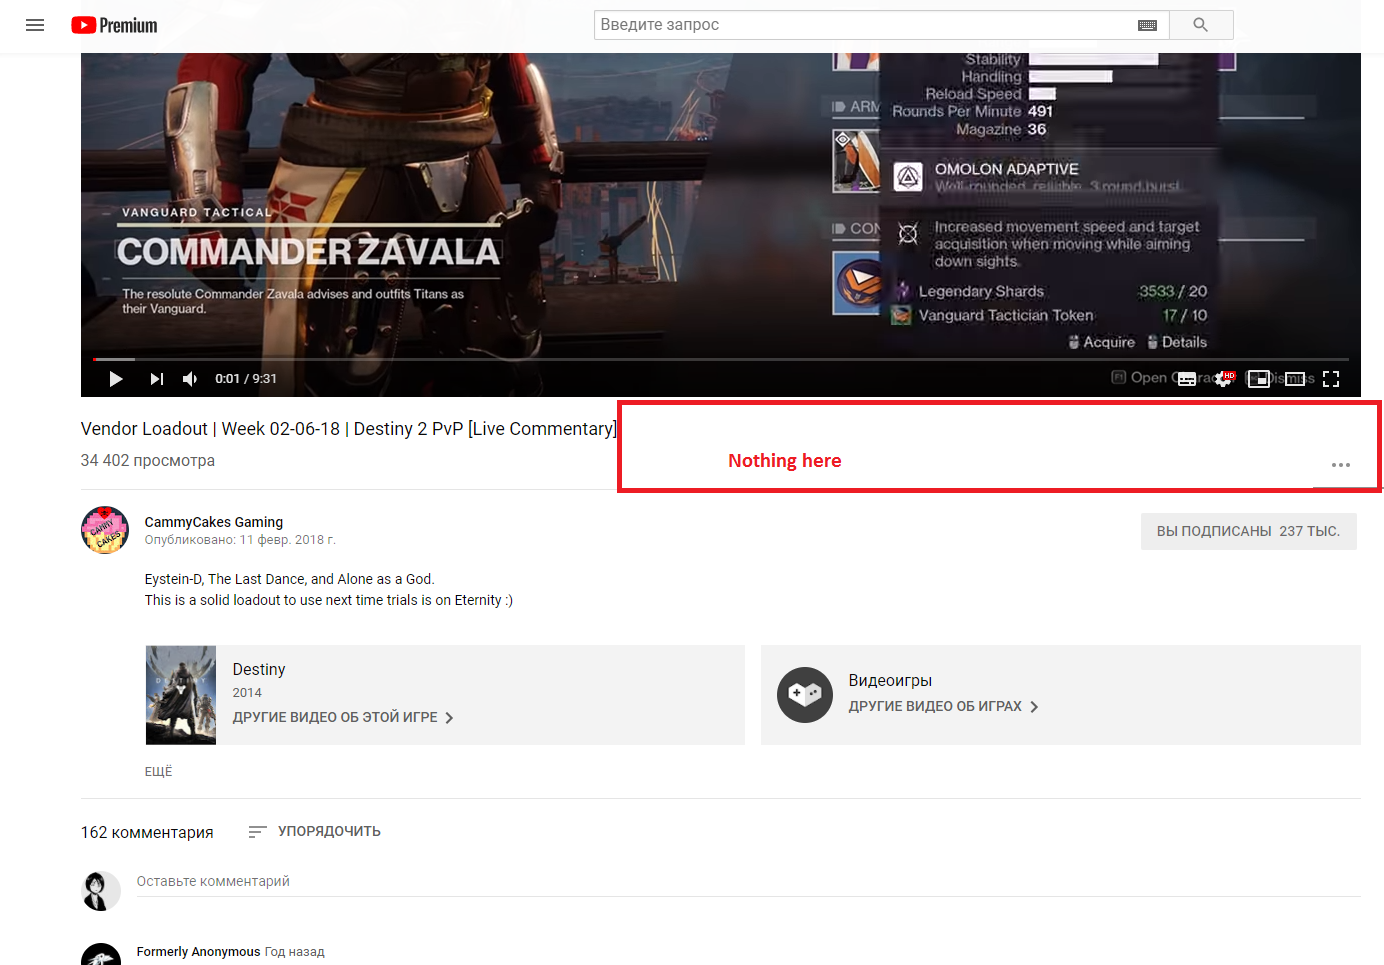 Most of the functional youtube buttons have dissappeared in